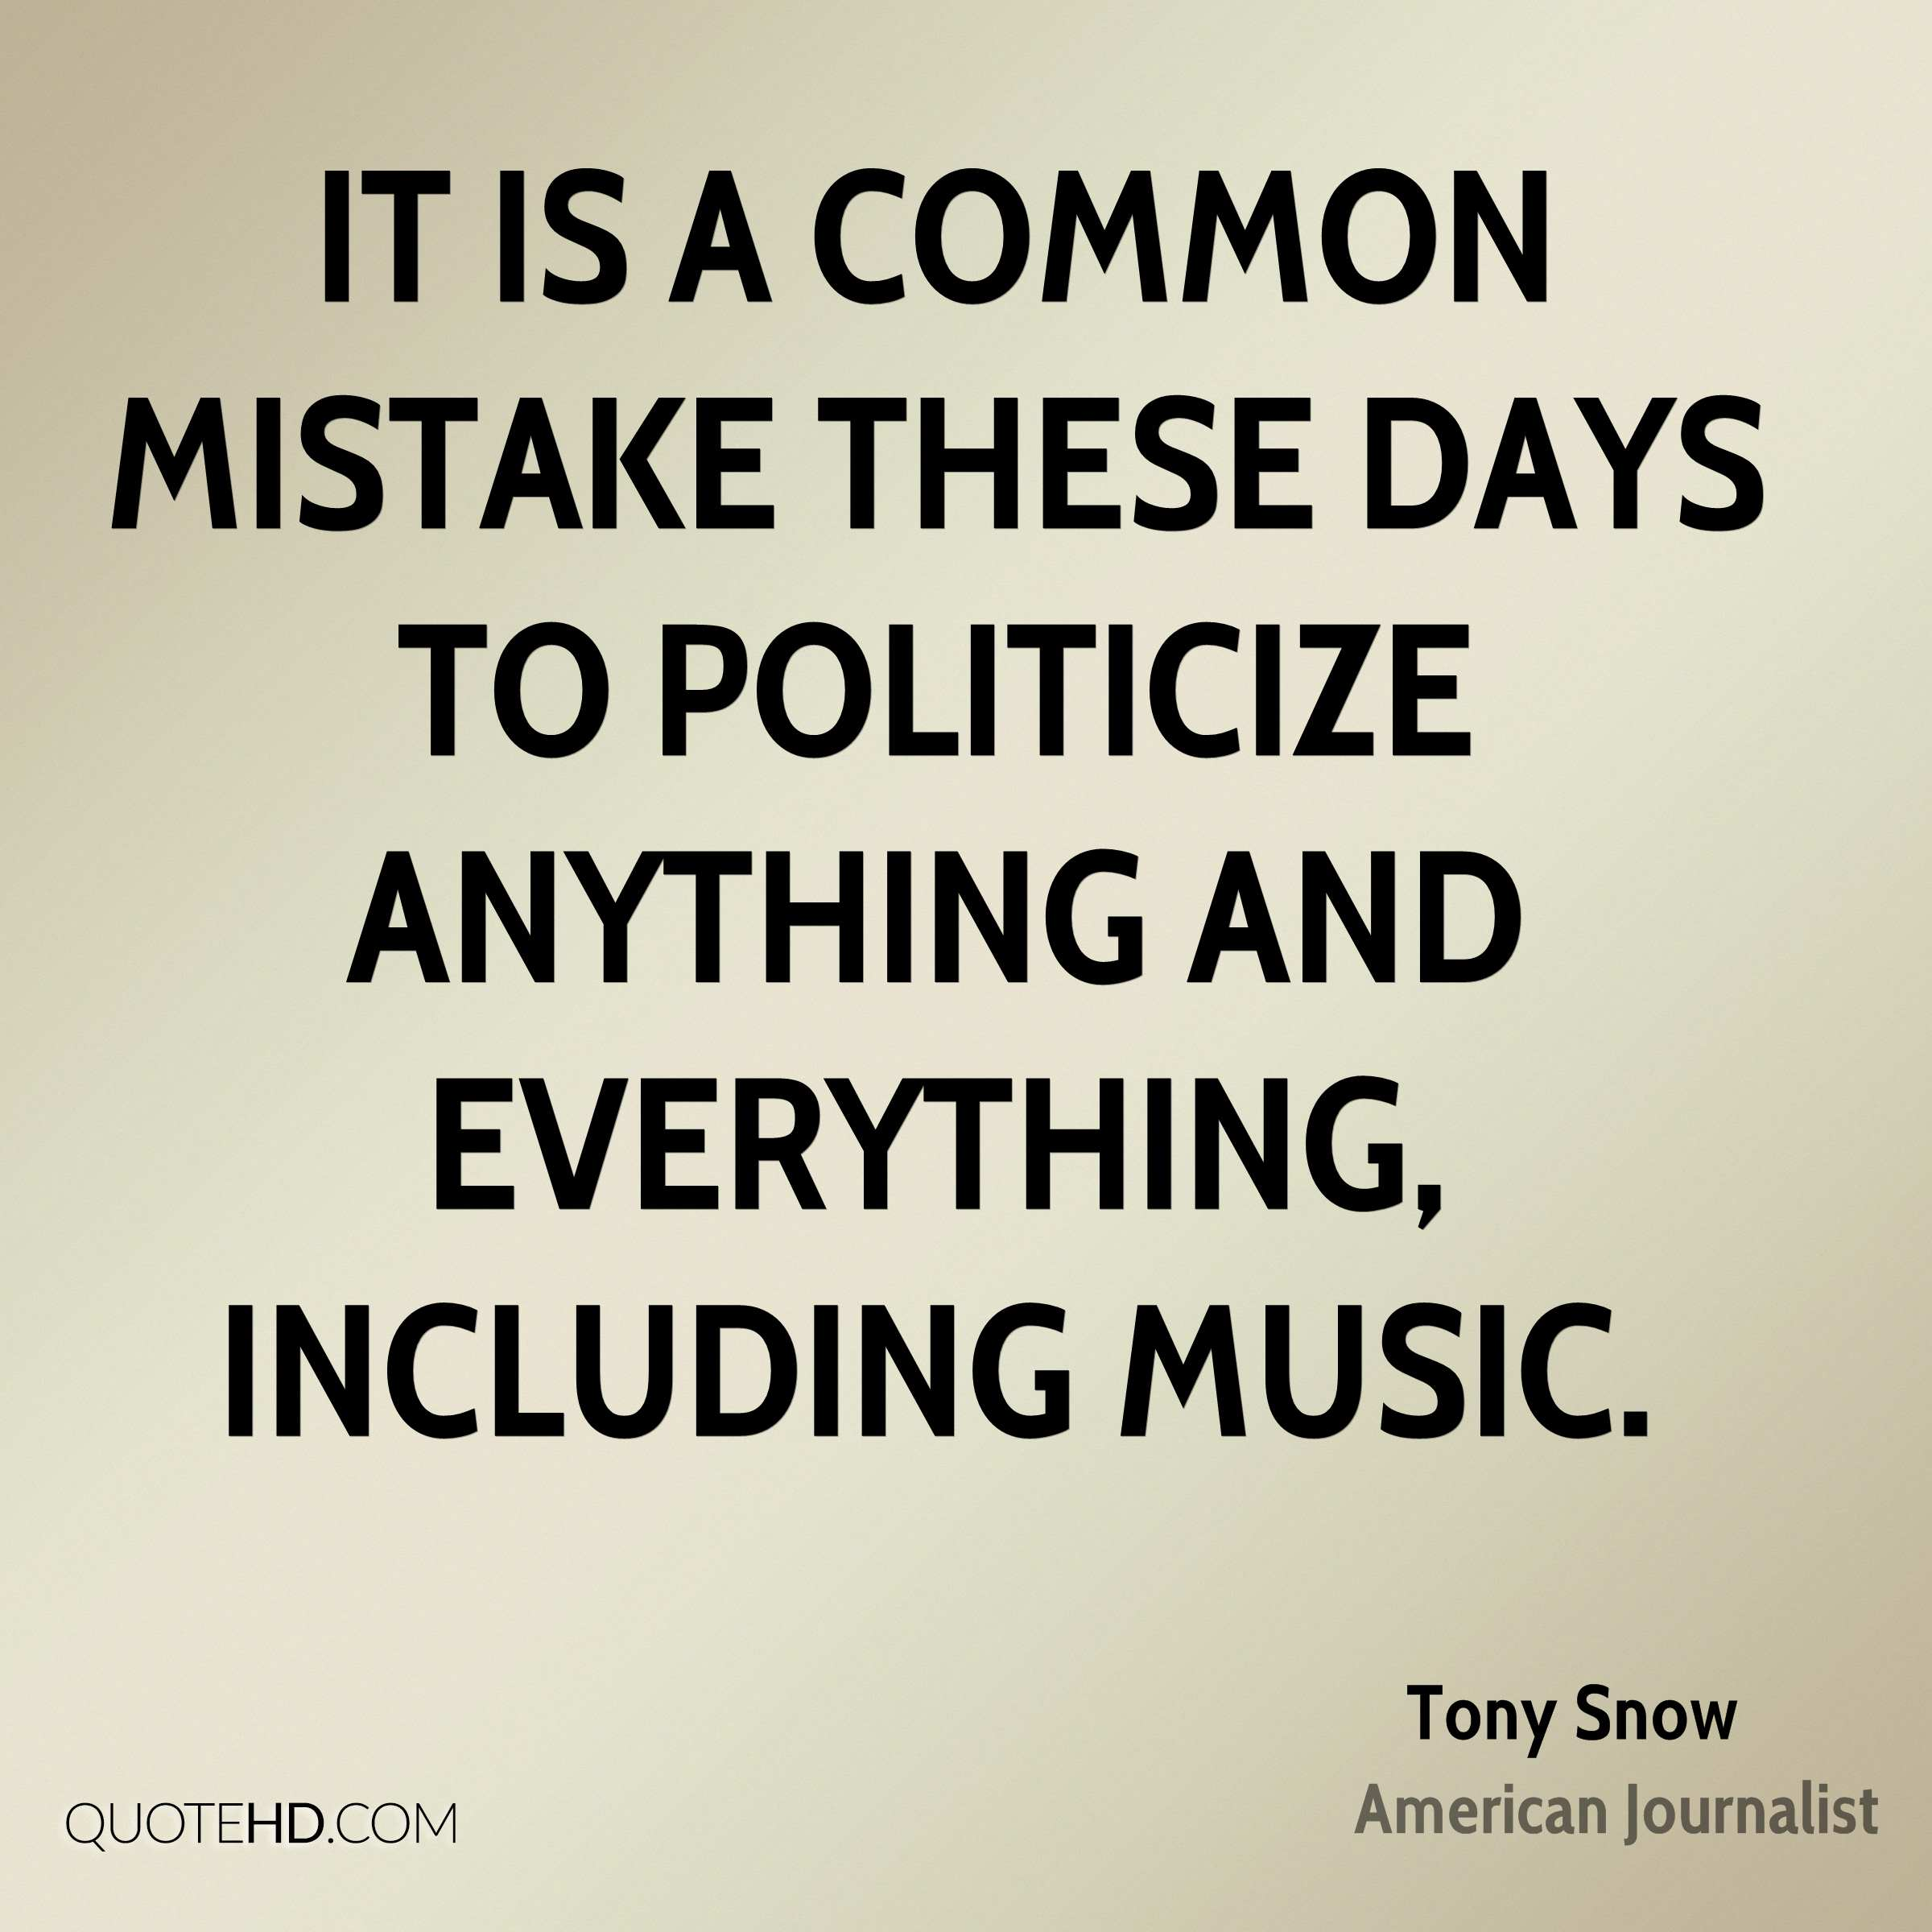 It is a common mistake these days to politicize anything and everything, including music.